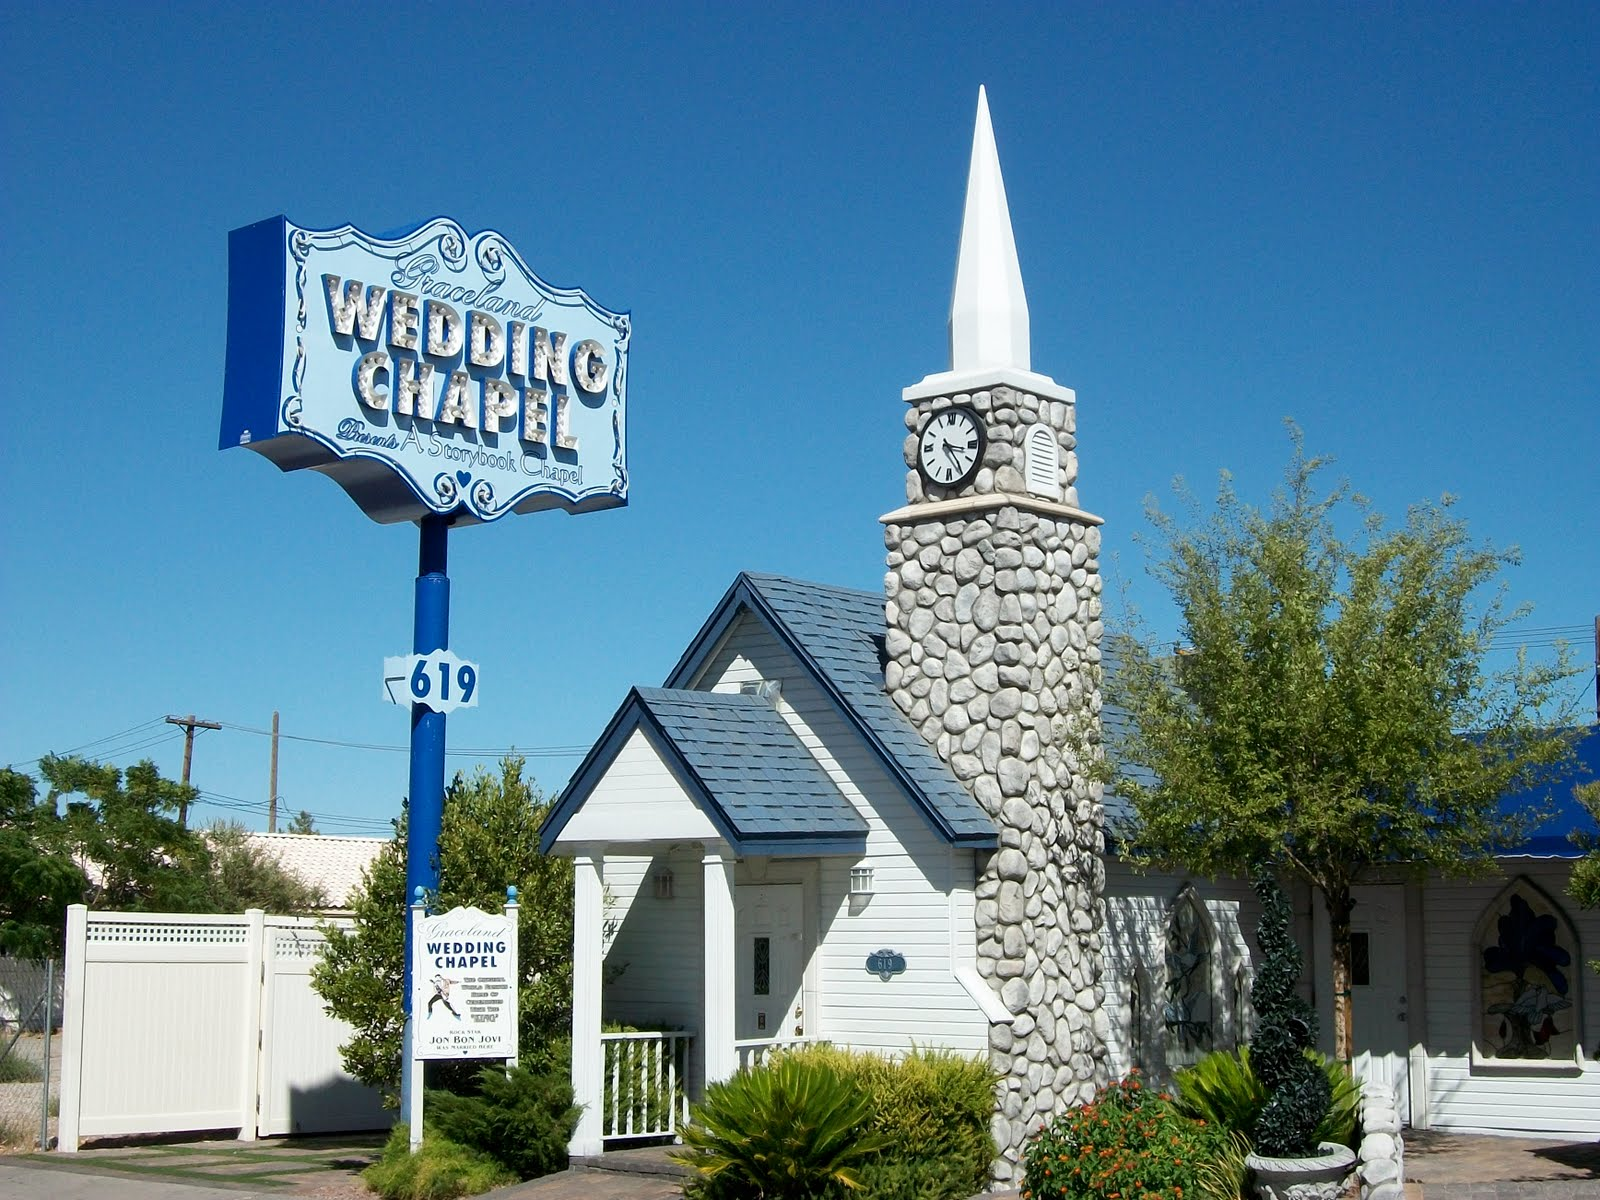 elvis graceland wedding chapel FlLVskALmRdvnzNuzUAEMYTI vegas wedding chapels Wedding Chapel Las Vegas Burning